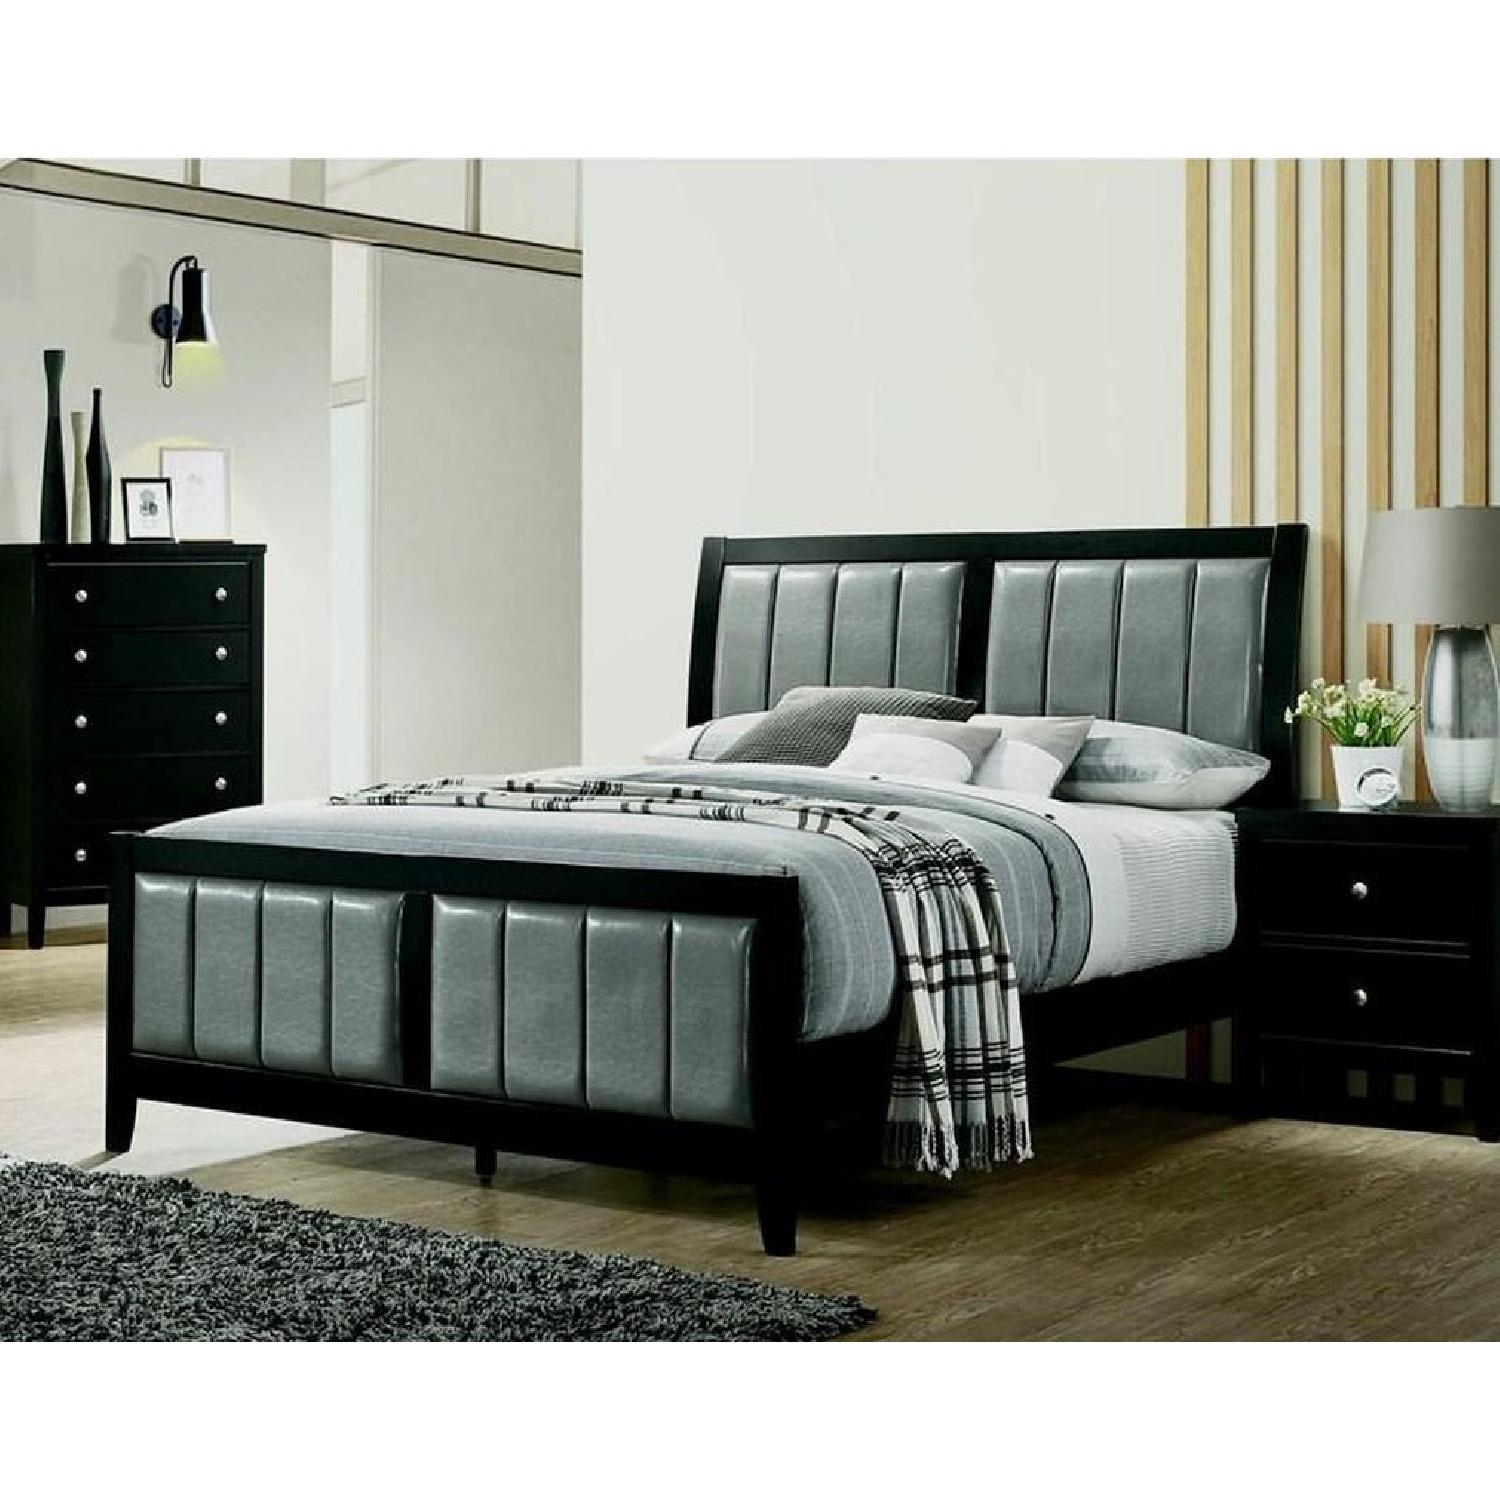 Queen Bed in Black Wood Frame w/ Grey Leatherette Headboard - image-5